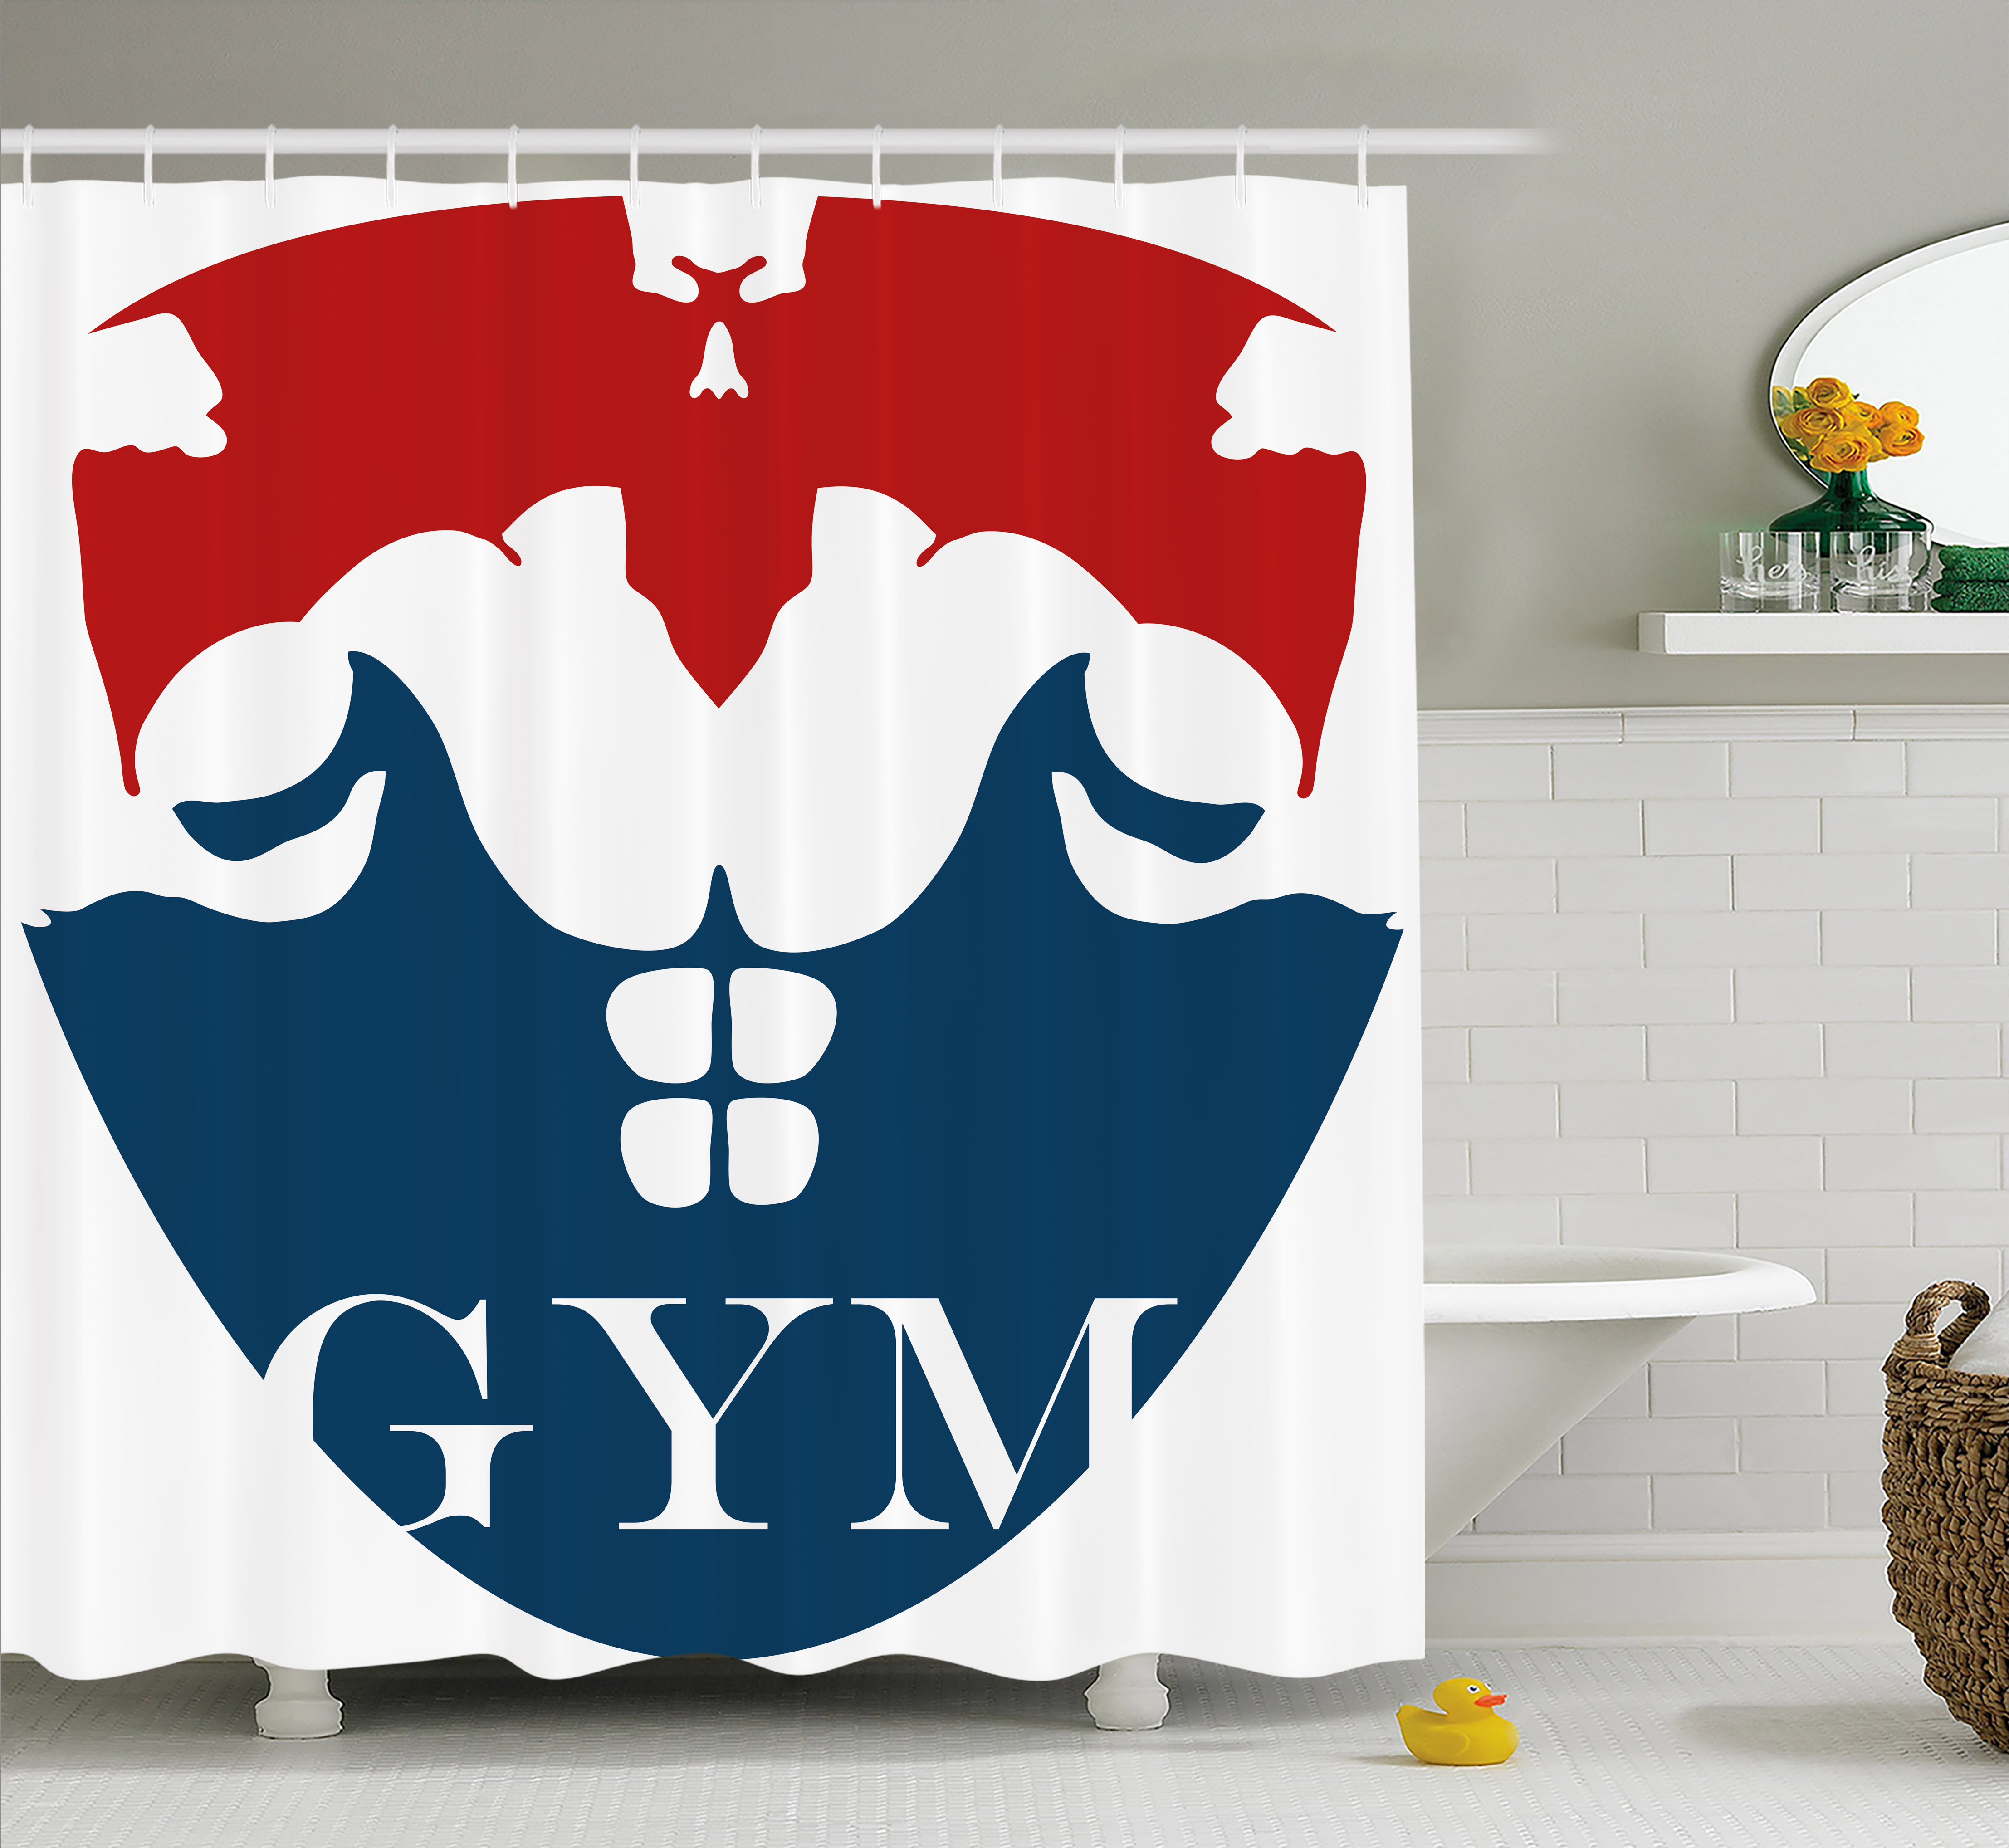 Fitness Shower Curtain, Strong Muscular Man with Biceps Powerful Athlete Bodybuilder Trainer Gym Logo, Fabric Bathroom Set with Hooks, 69W X 84L Inches Extra Long, Red Blue White, by Ambesonne